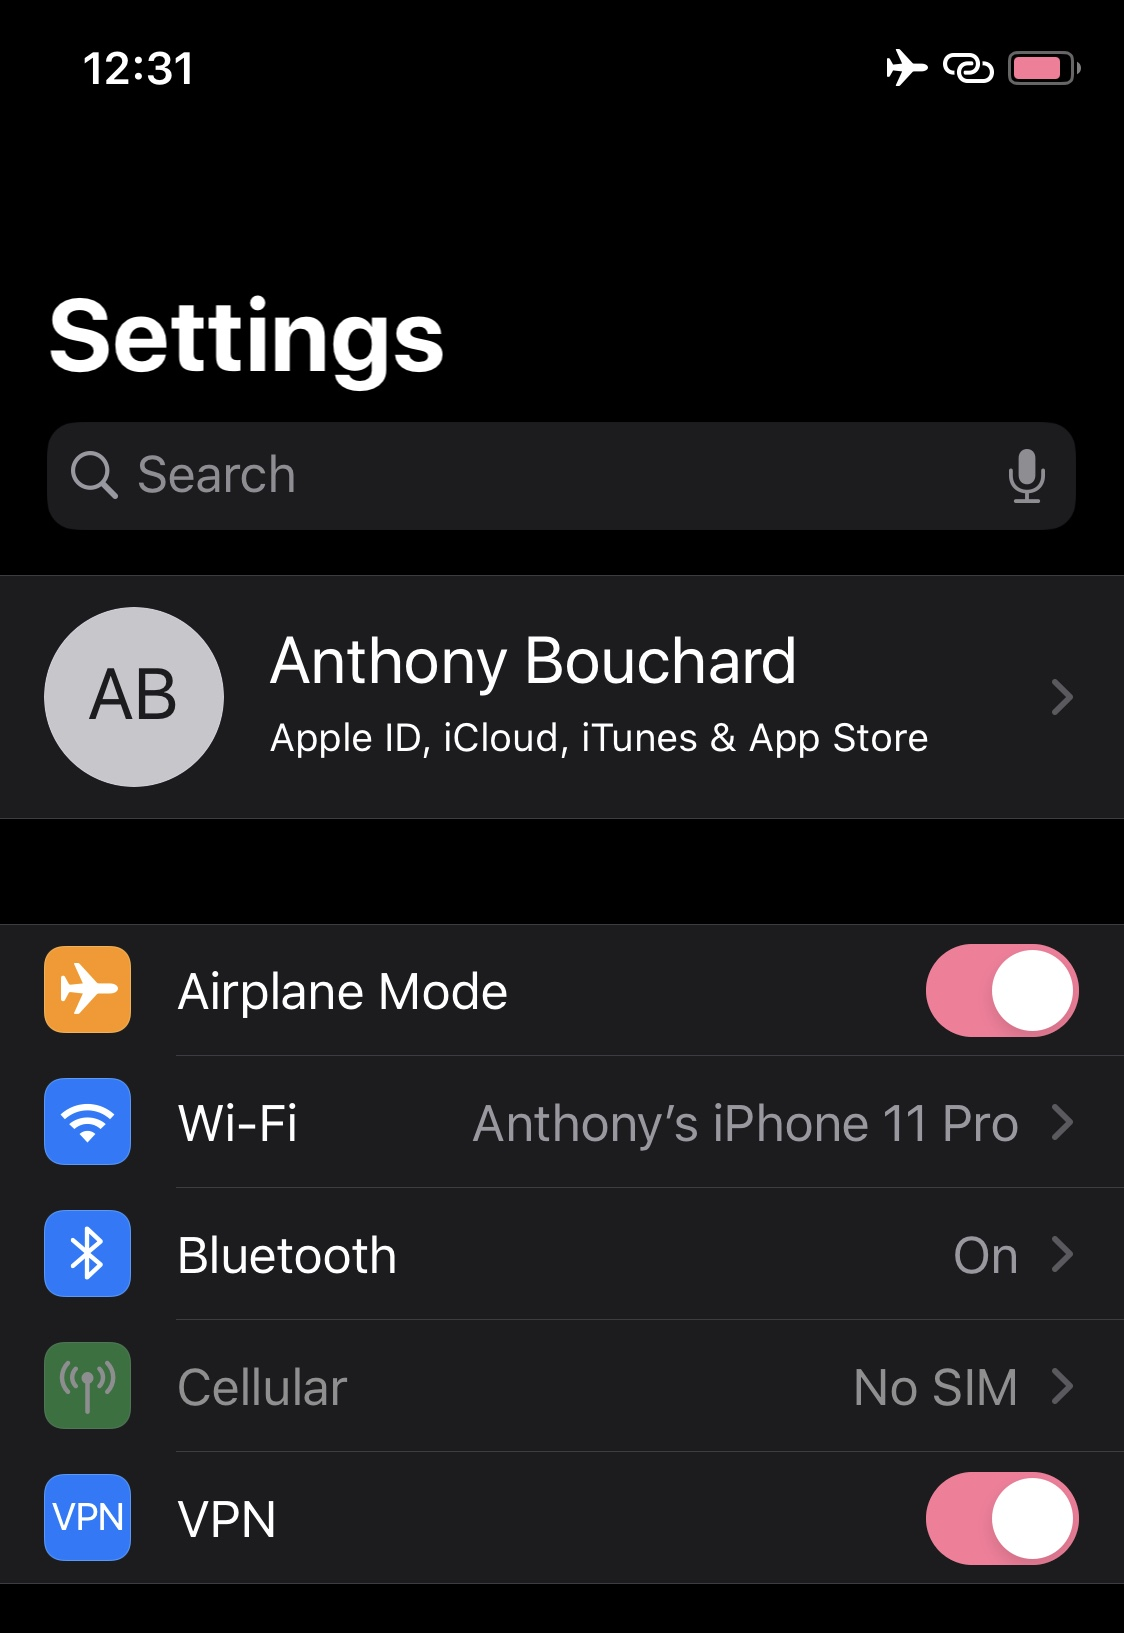 Tint various aspects of the iOS UI with Accent